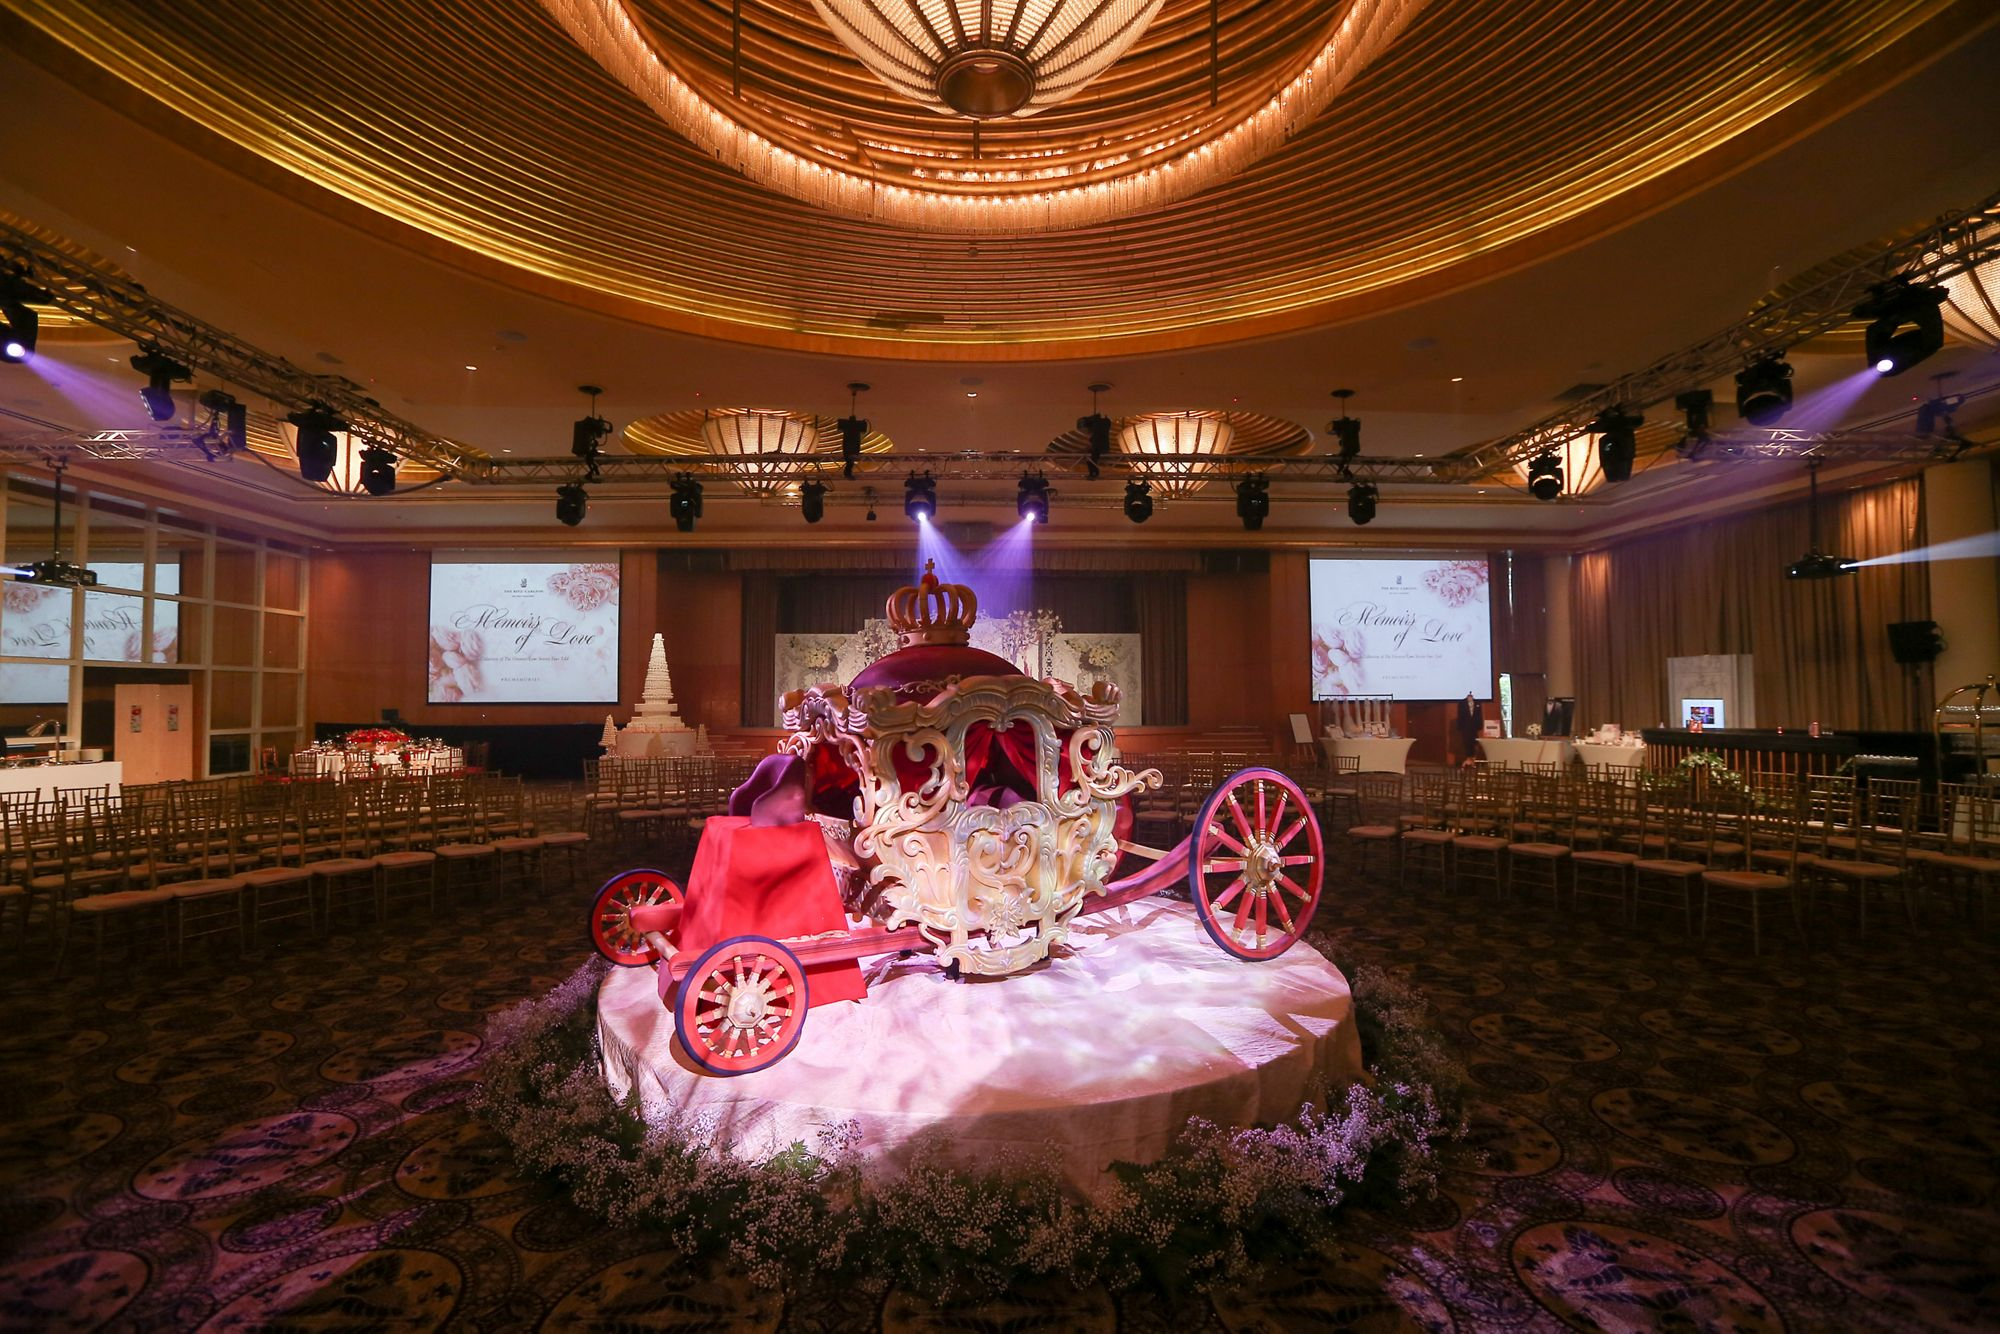 The Ritz Carlton Millenia Singapore wedding fairy tale decoration